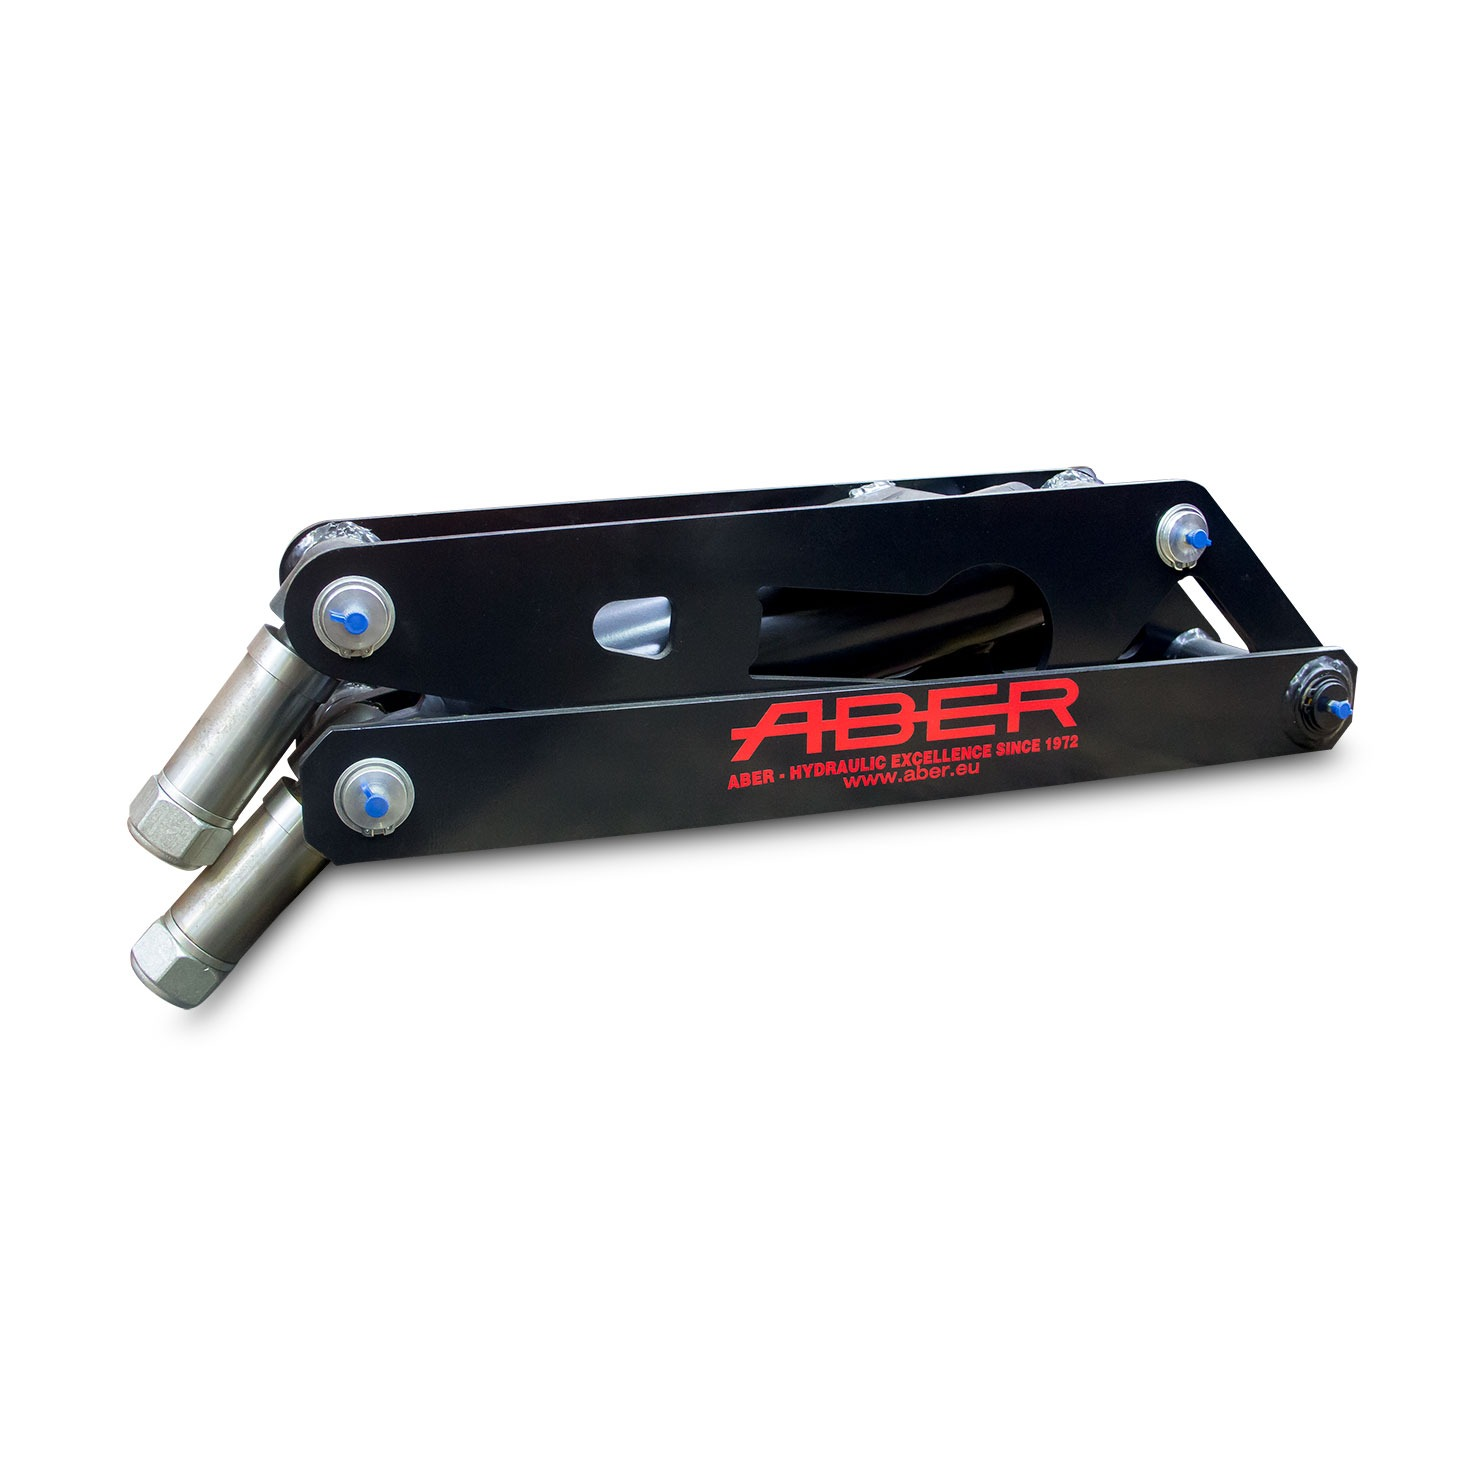 Three Tipper Scissor - ABER